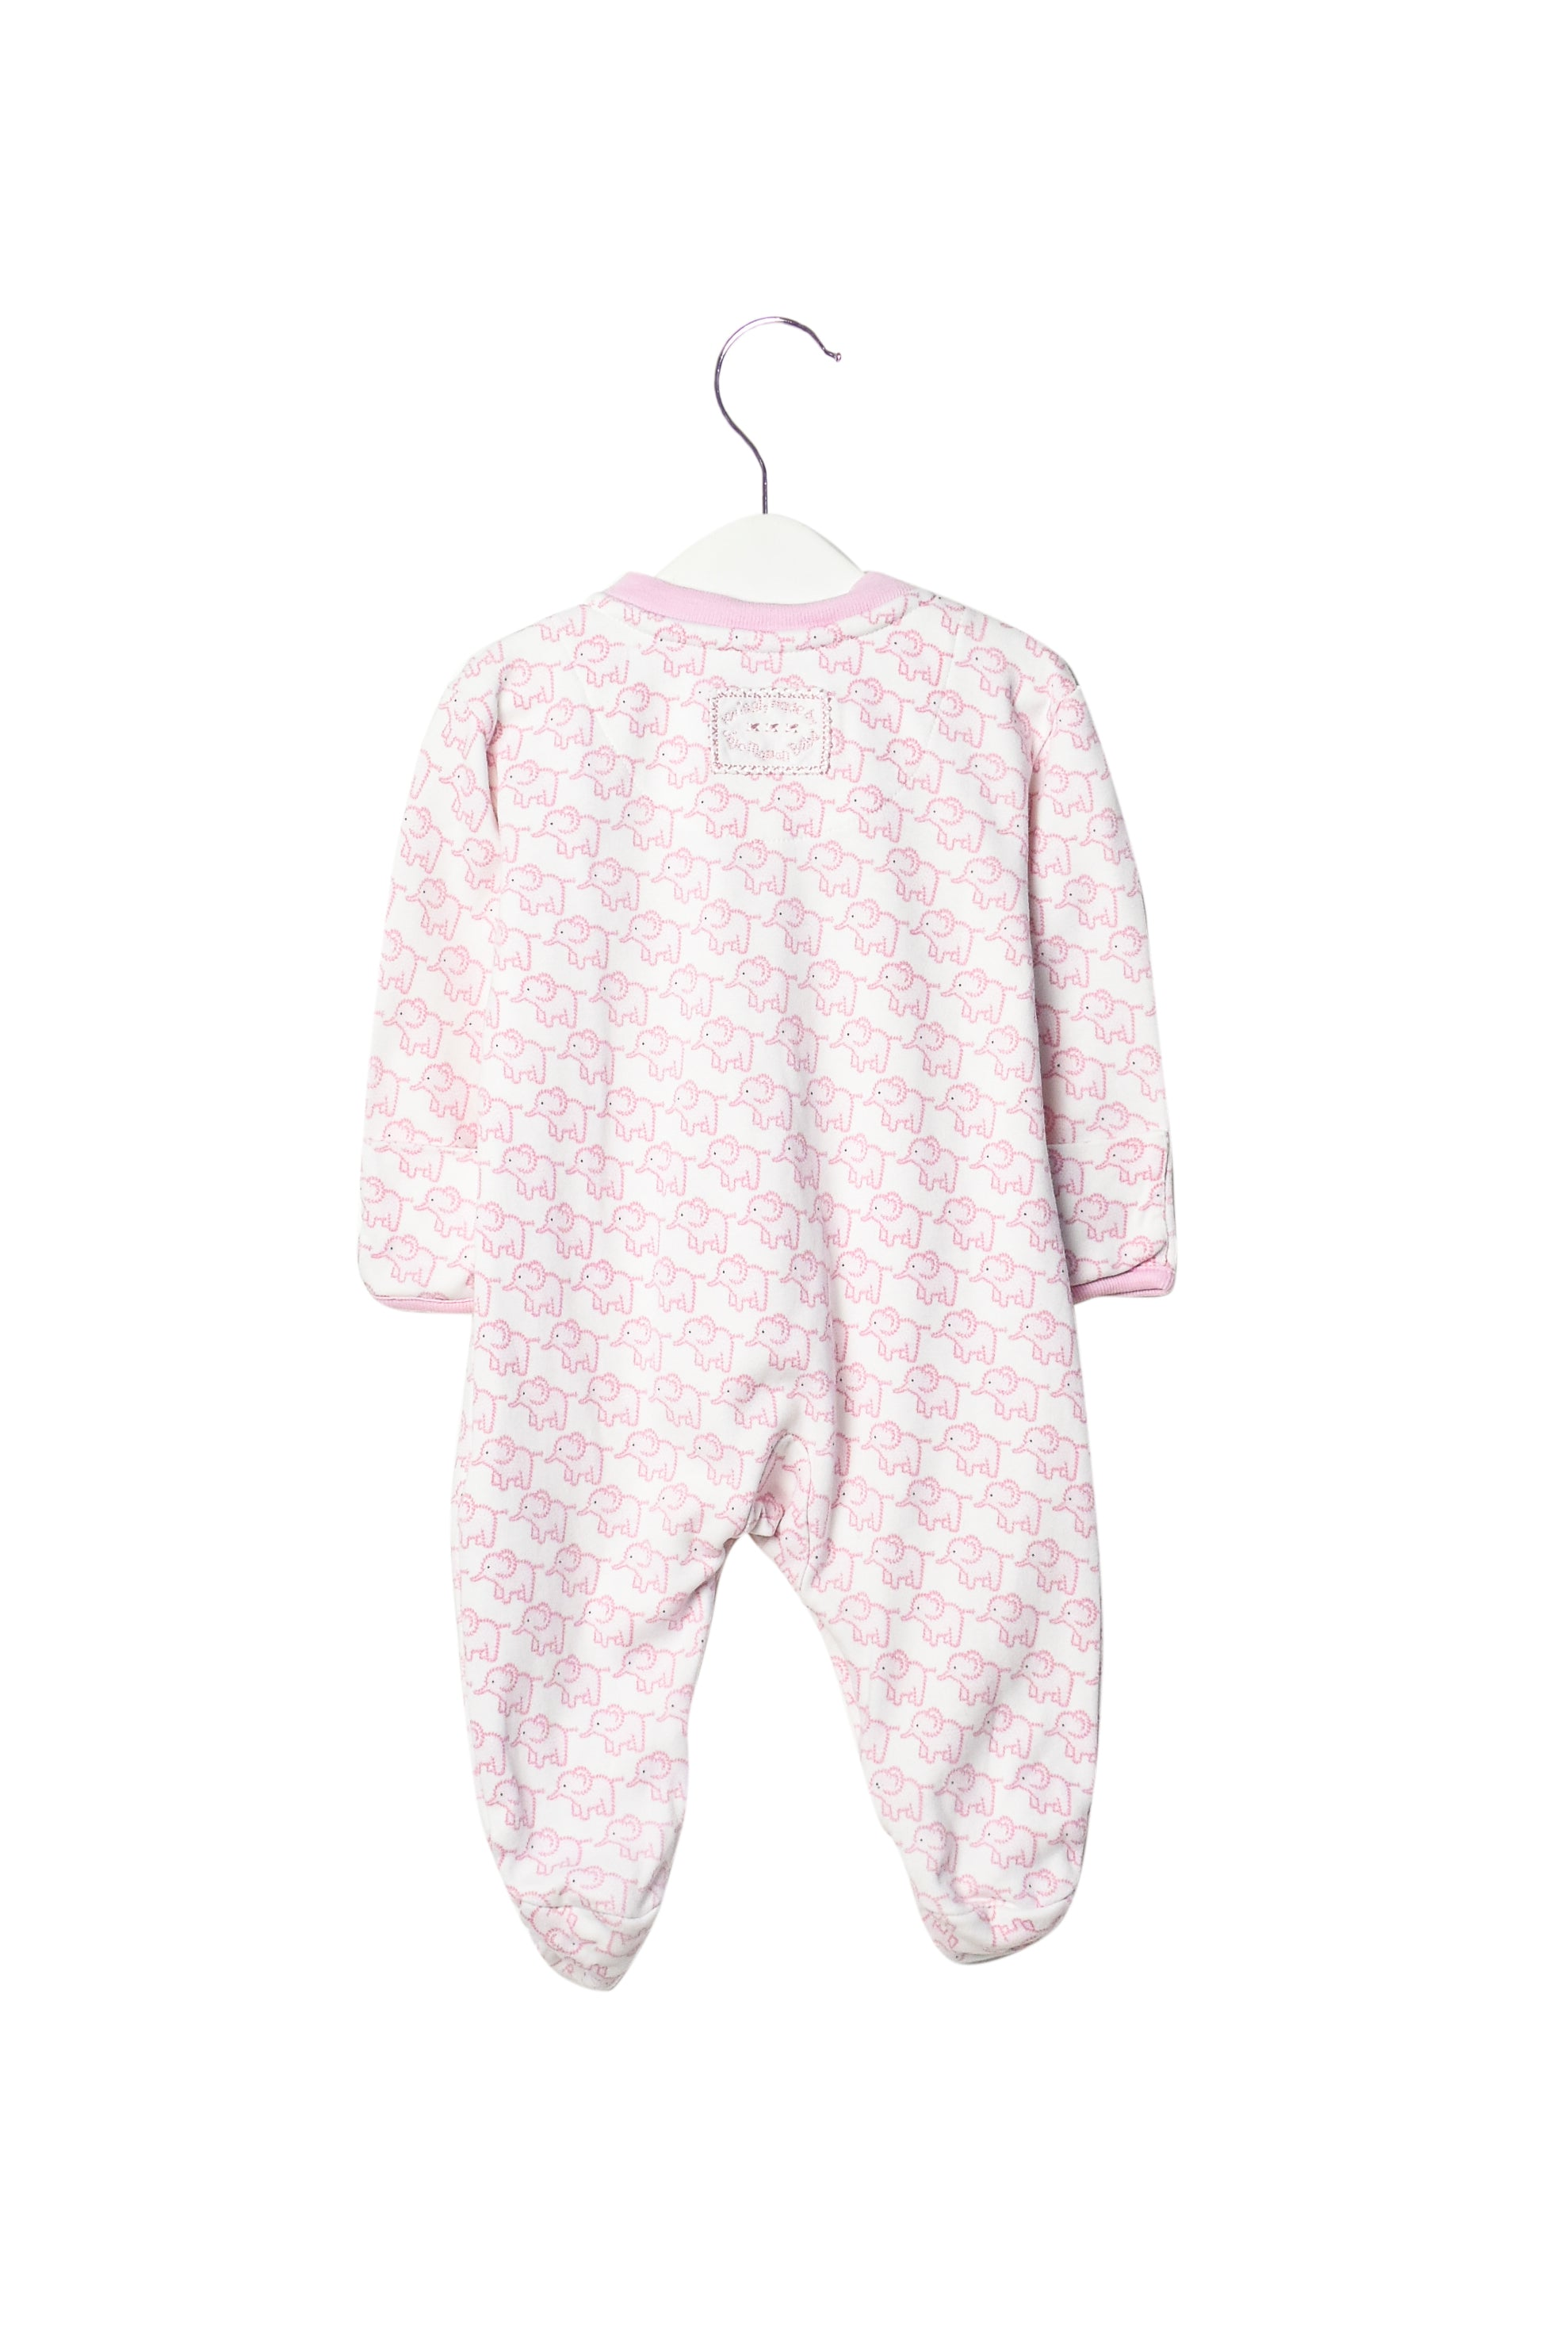 10008094 Jojo Maman Bebe Baby~Jumpsuit 0-3M at Retykle